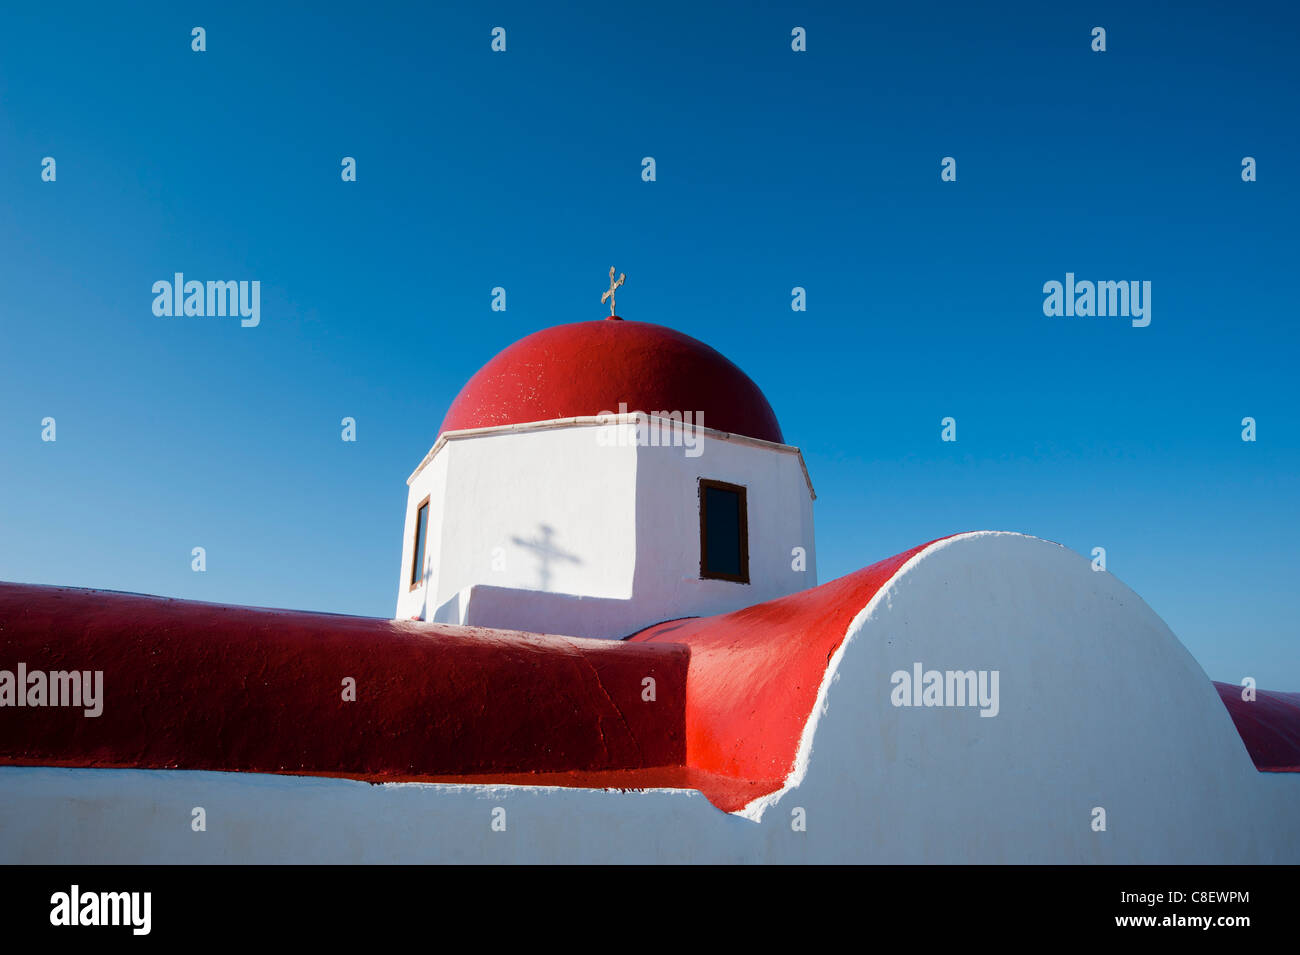 Panagia Tourliani Monastery, Ano Mera, Mykonos, Cyclades, Greek Islands, Greece Stock Photo